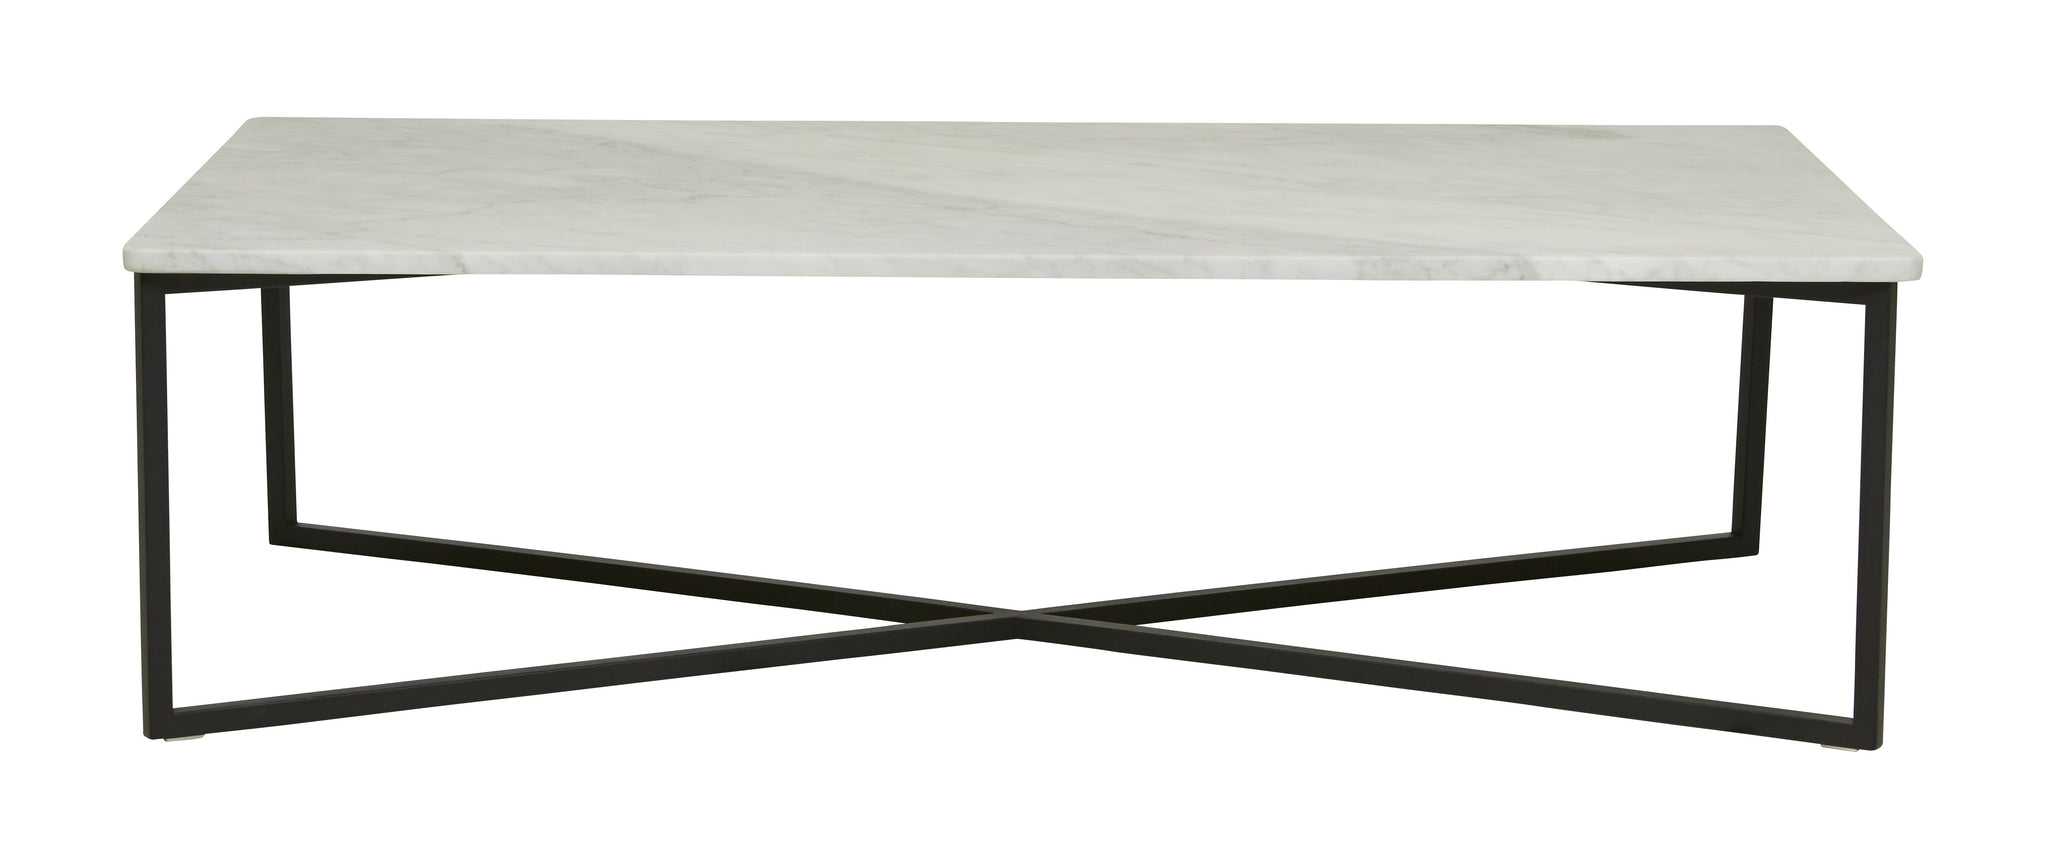 Elle Luxe Coffee Table Matt White Marble/ Black